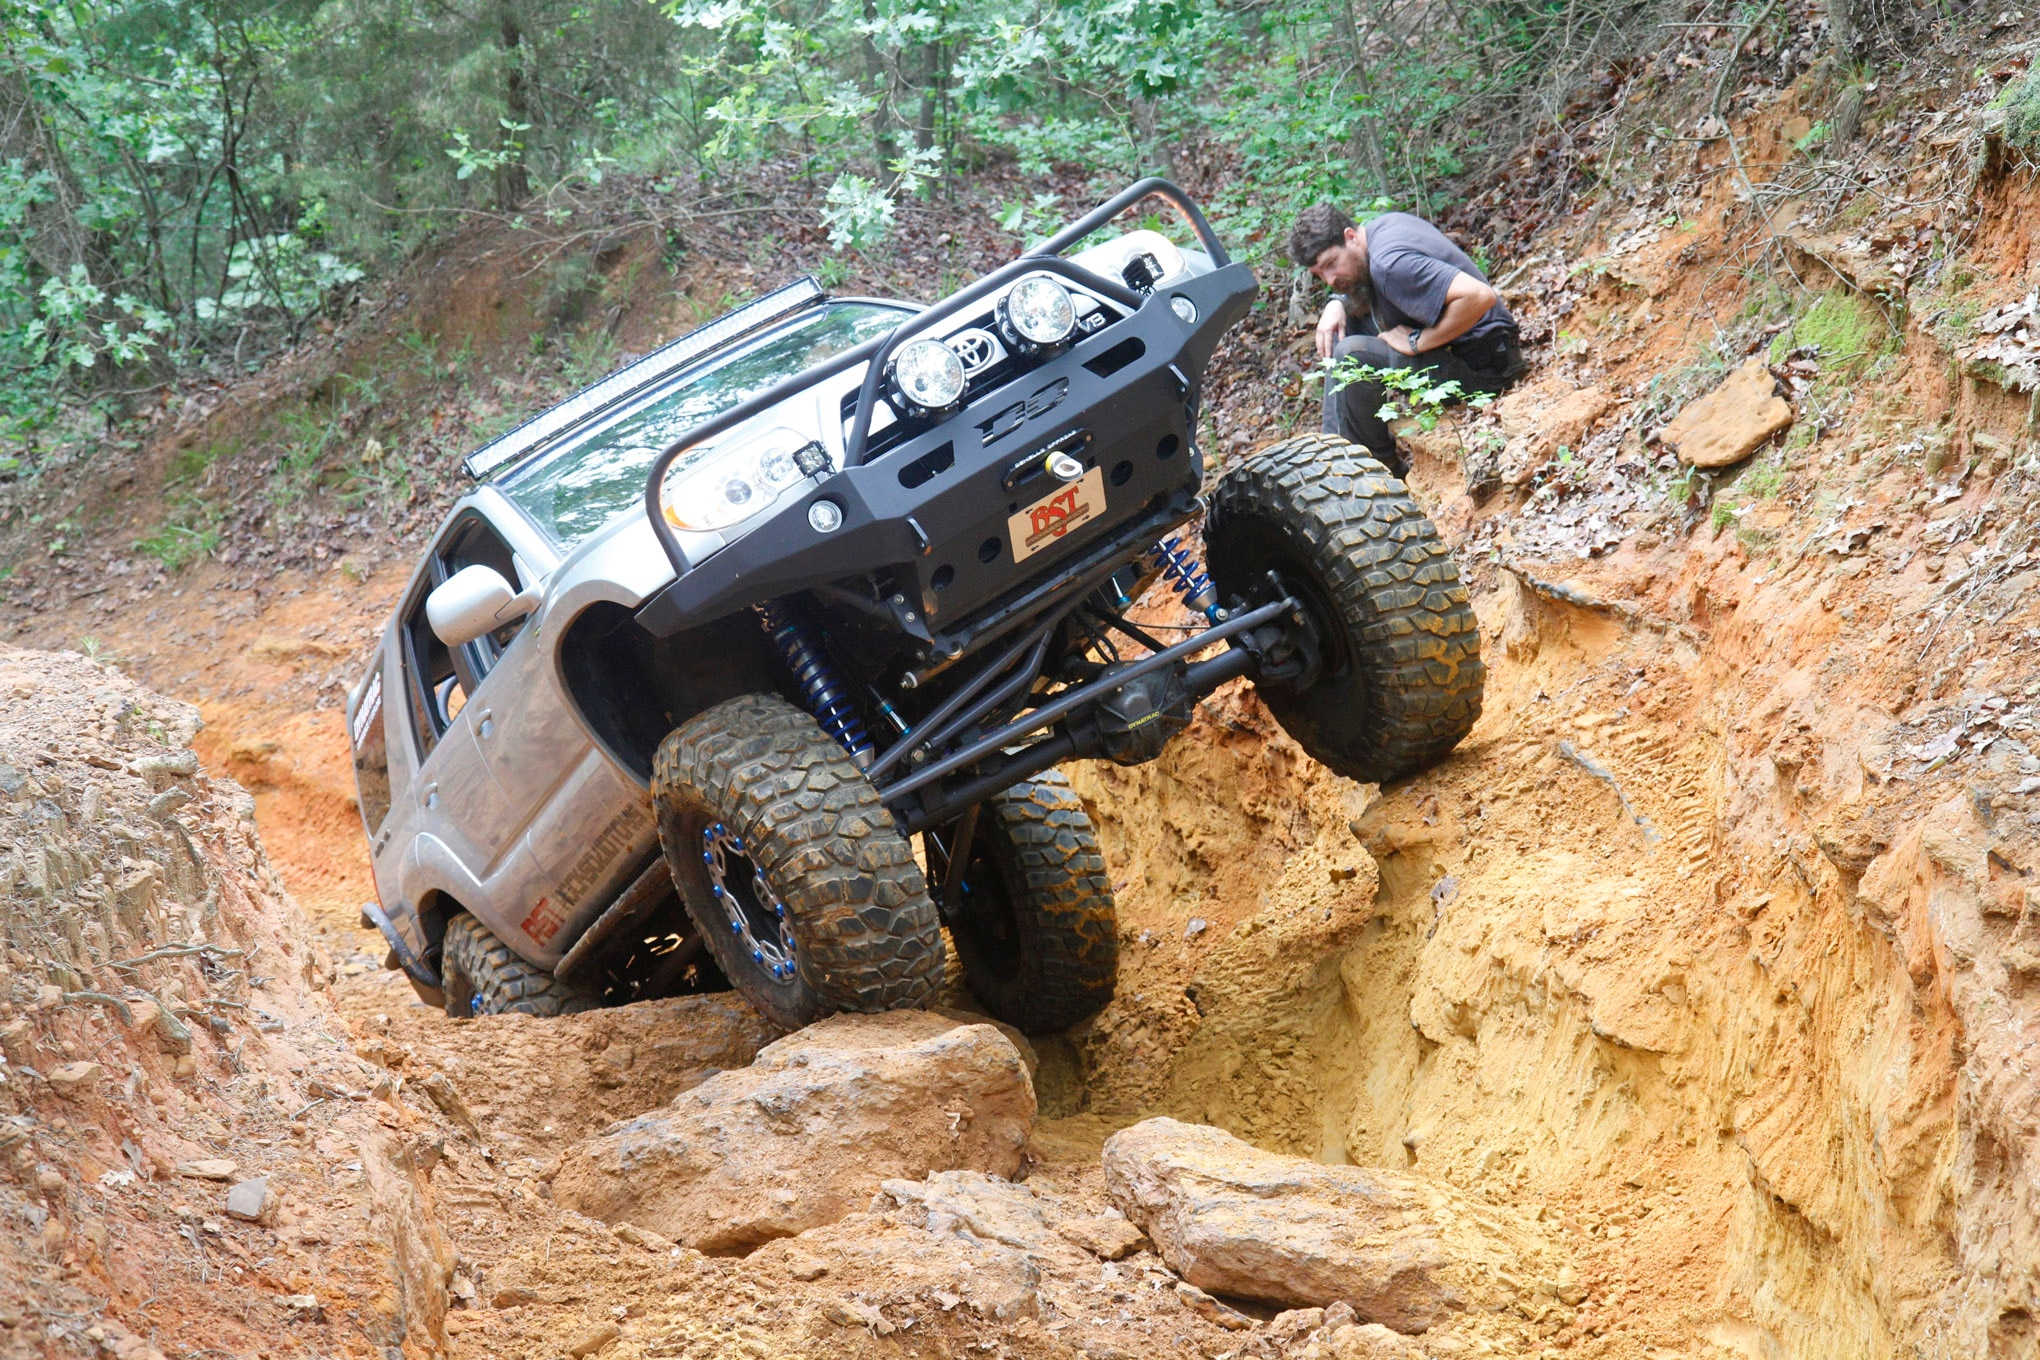 Dave Crosby stands up his 2006 4Runner at the bottom of a tough climb. He has swapped a set of linked Dana 60 axles and a Marlin Crawler transfer case under the Toyota to handle 39-inch BFGoodrich Krawlers.